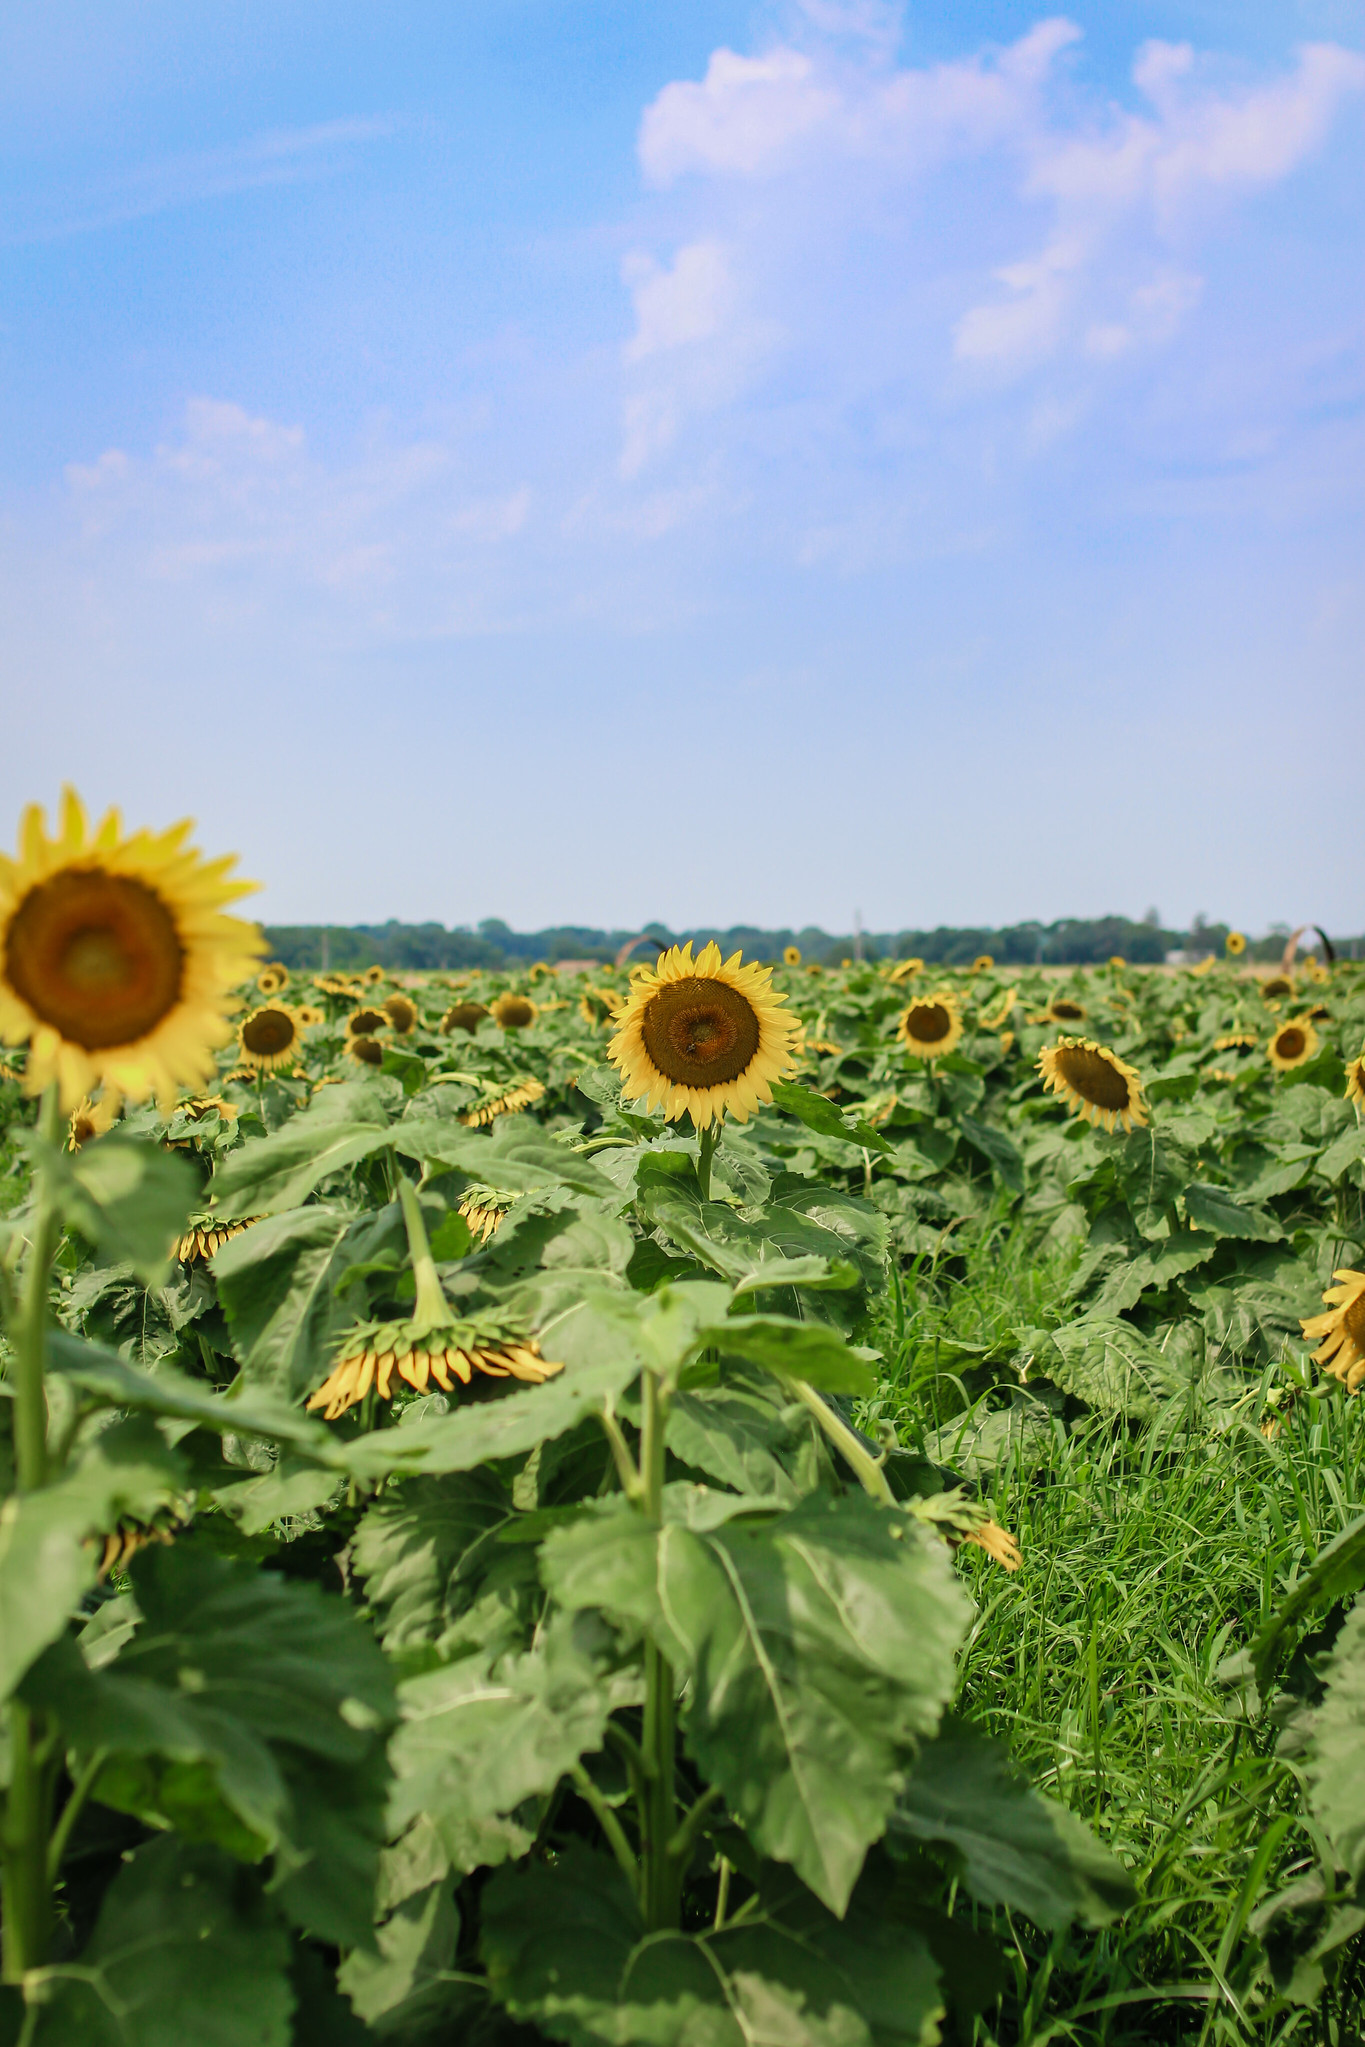 Why You Need to Visit a Sunflower Field this Year | Best Sunflower Fields to Visit in New York | Sunflower Fields in New York | Beautiful Sunflower Farms | Sunflower Farms Near NYC | Sunflower Field Aesthetic | Sunflower Landscape | Sunflower Aesthetic | Sunflower Season